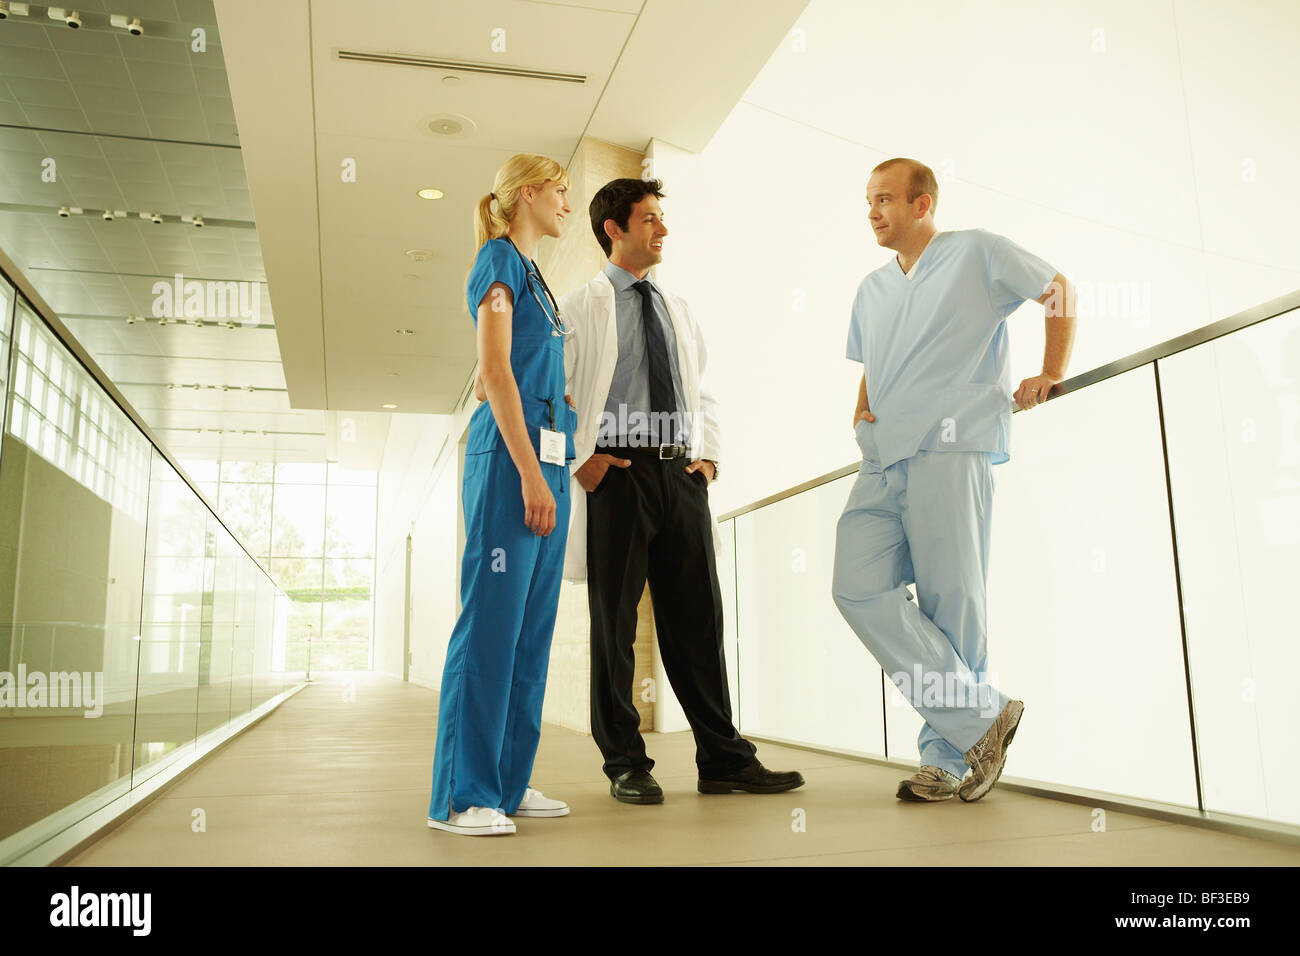 Medical personnel in modern facility - Stock Image